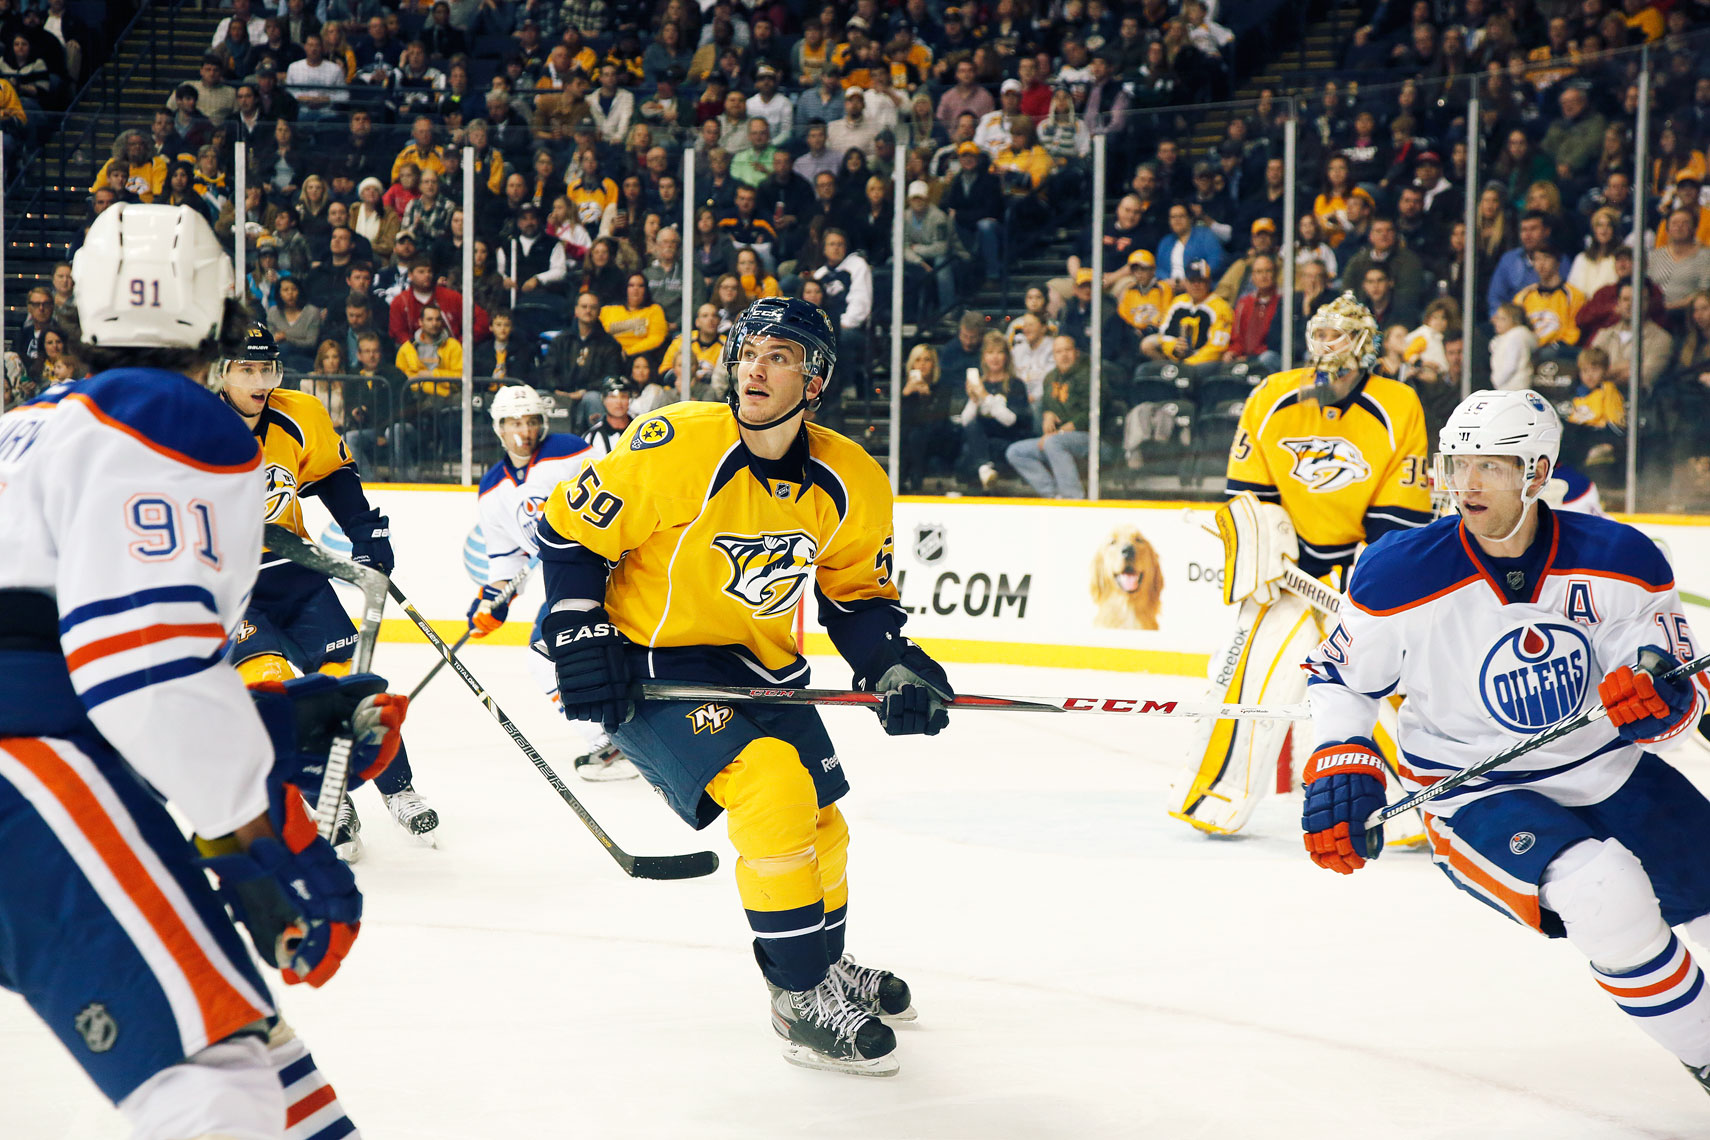 Roman Josi by PETER LueDERS